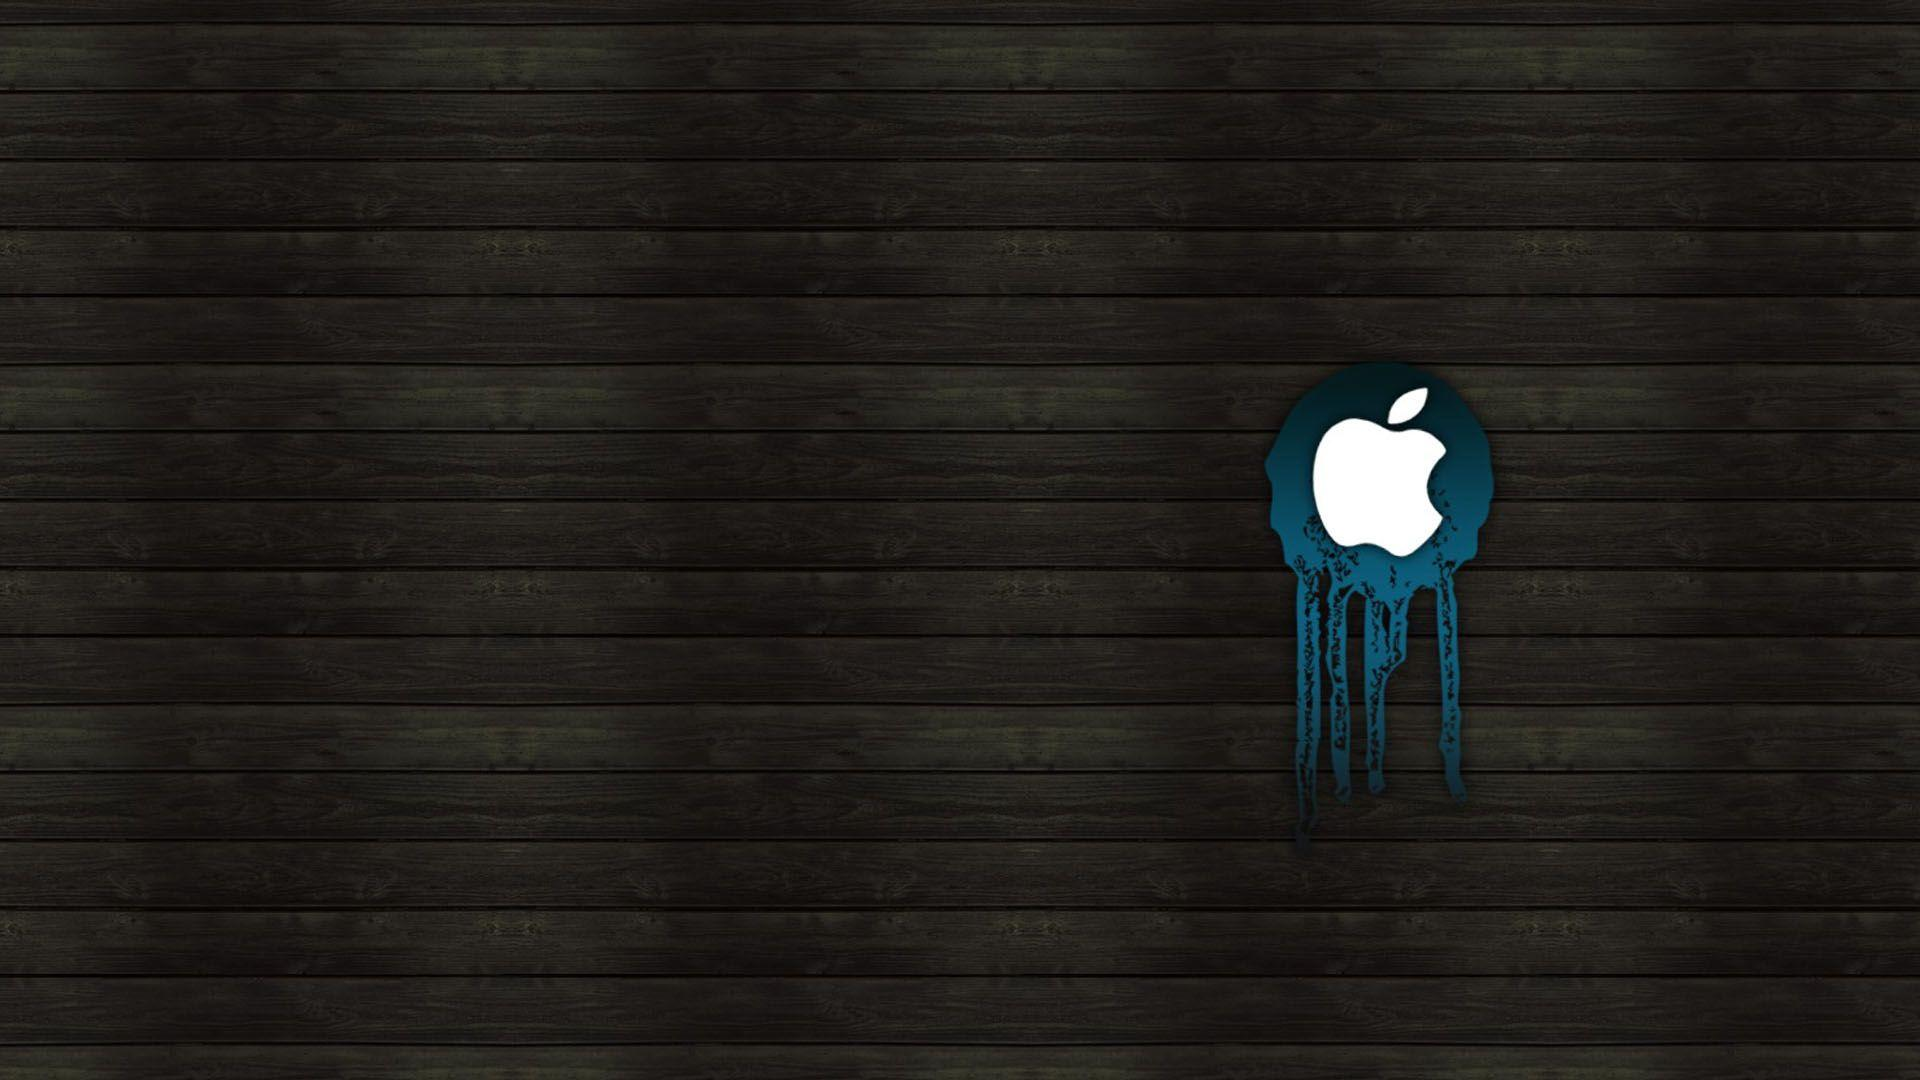 Hd Backgrounds For Macbook Wallpaper Cave